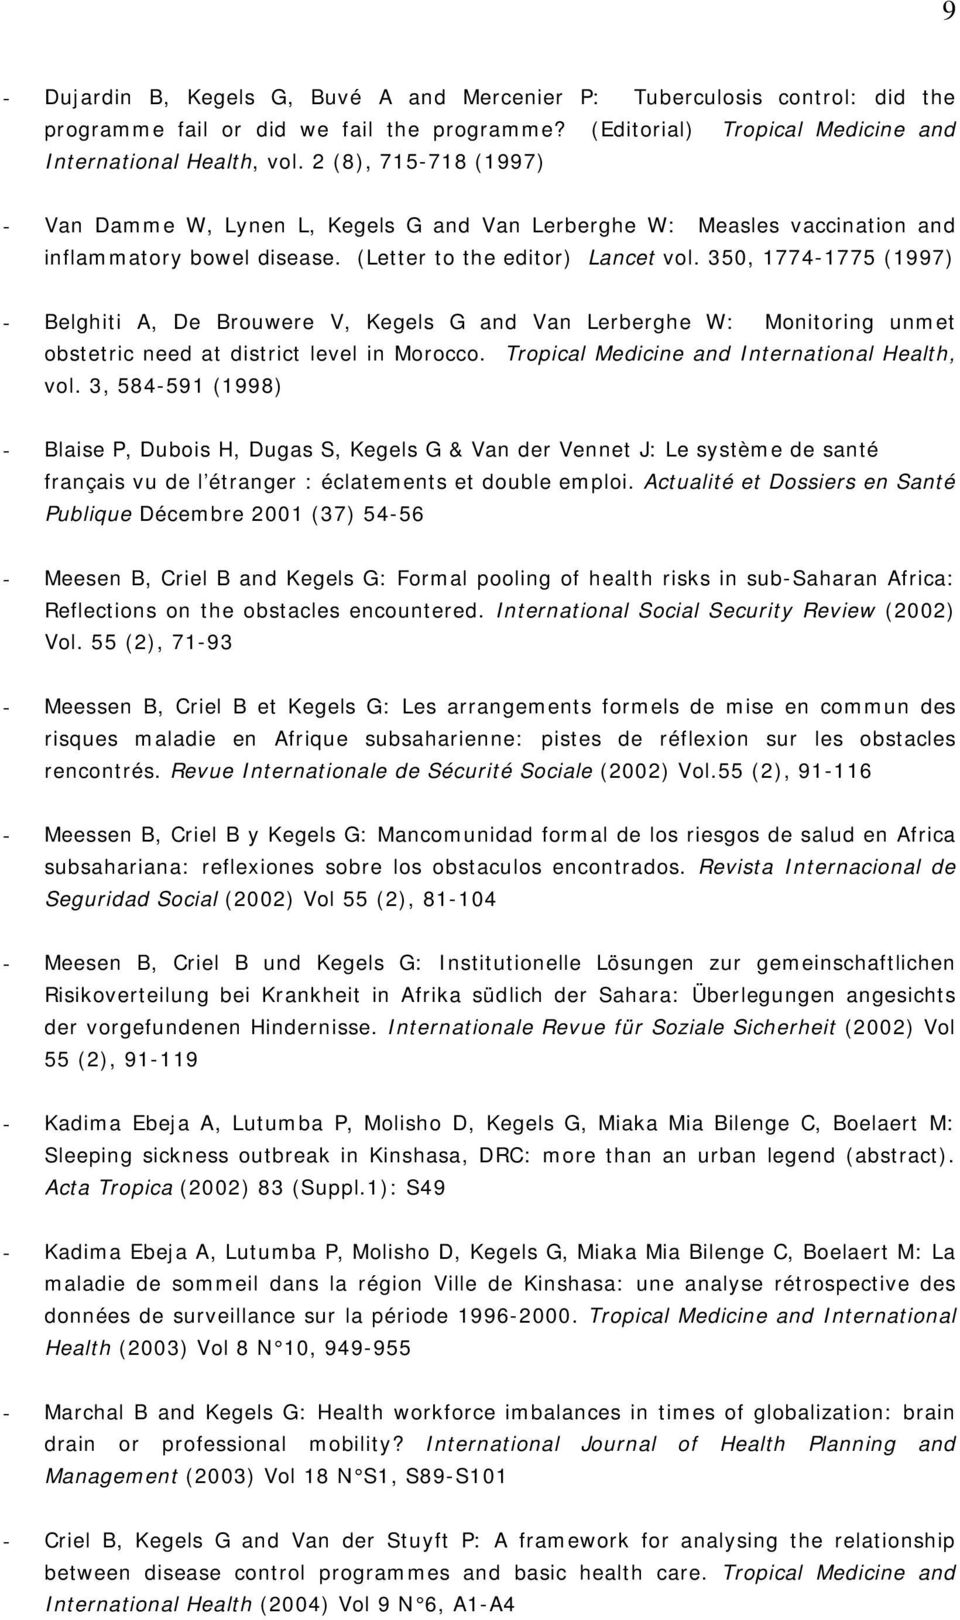 350, 1774-1775 (1997) - Belghiti A, De Brouwere V, Kegels G and Van Lerberghe W: Monitoring unmet obstetric need at district level in Morocco. Tropical Medicine and International Health, vol.